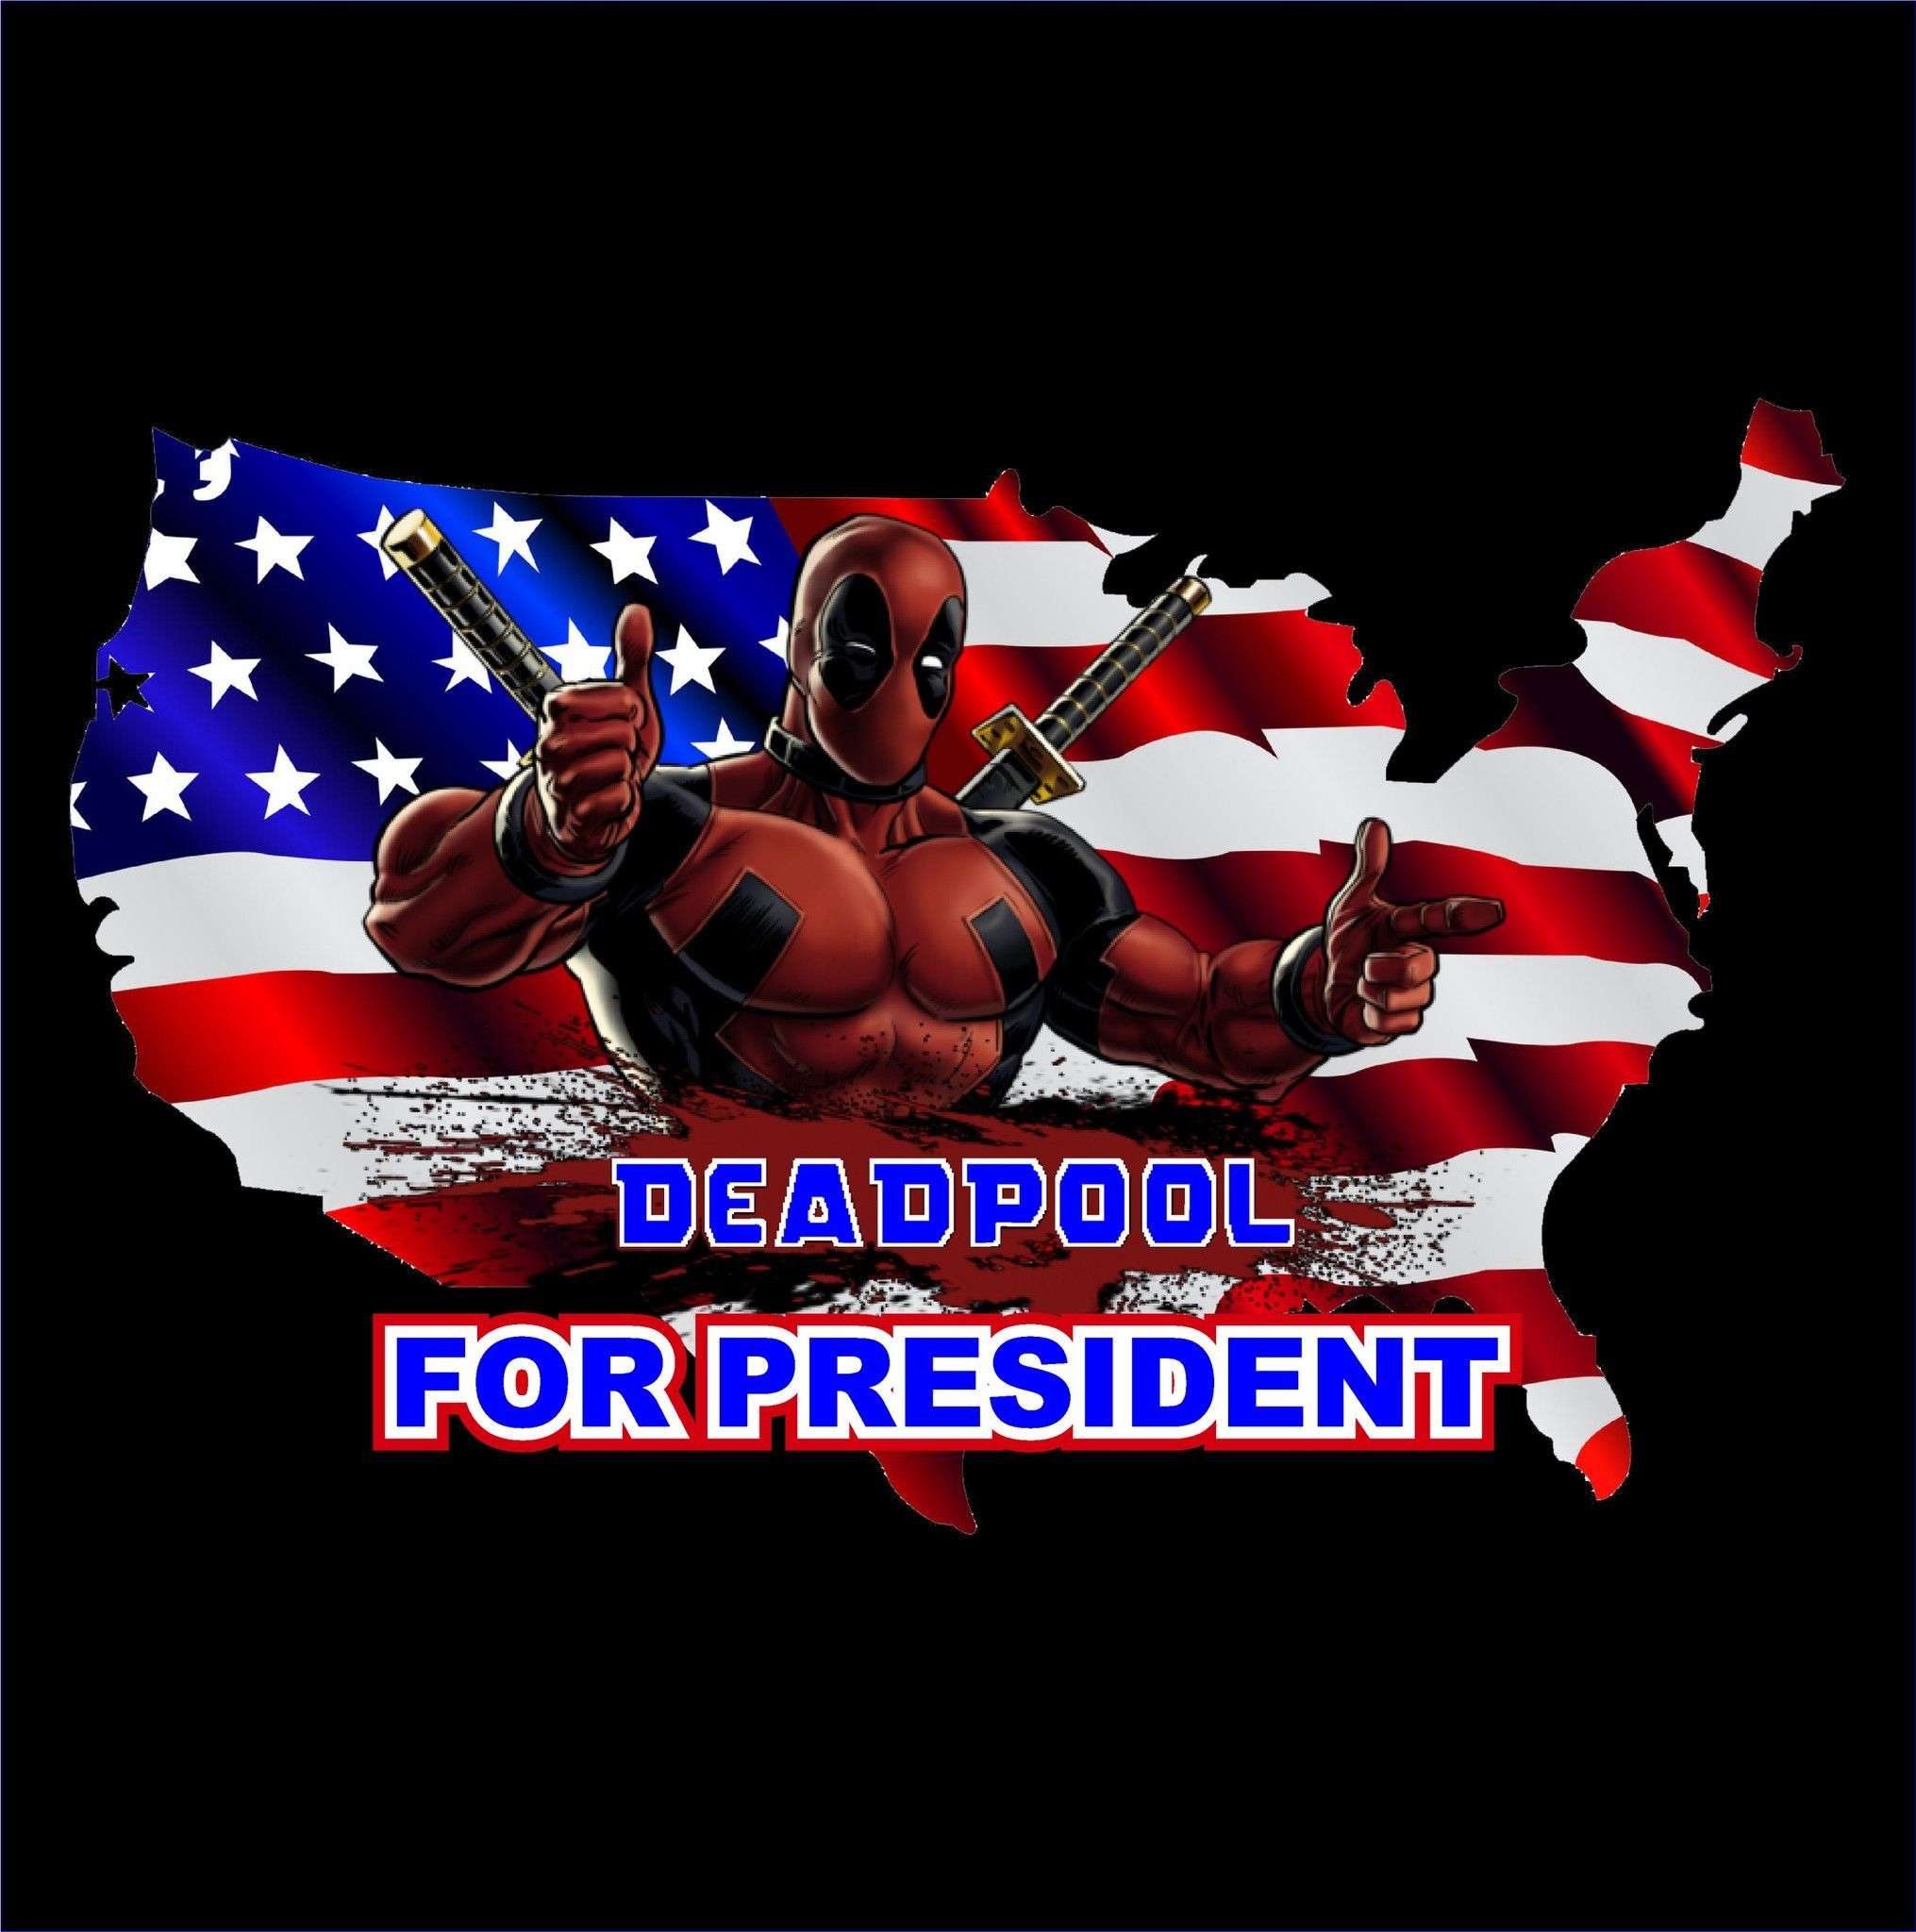 the only logical choice...faith in america restored ;D